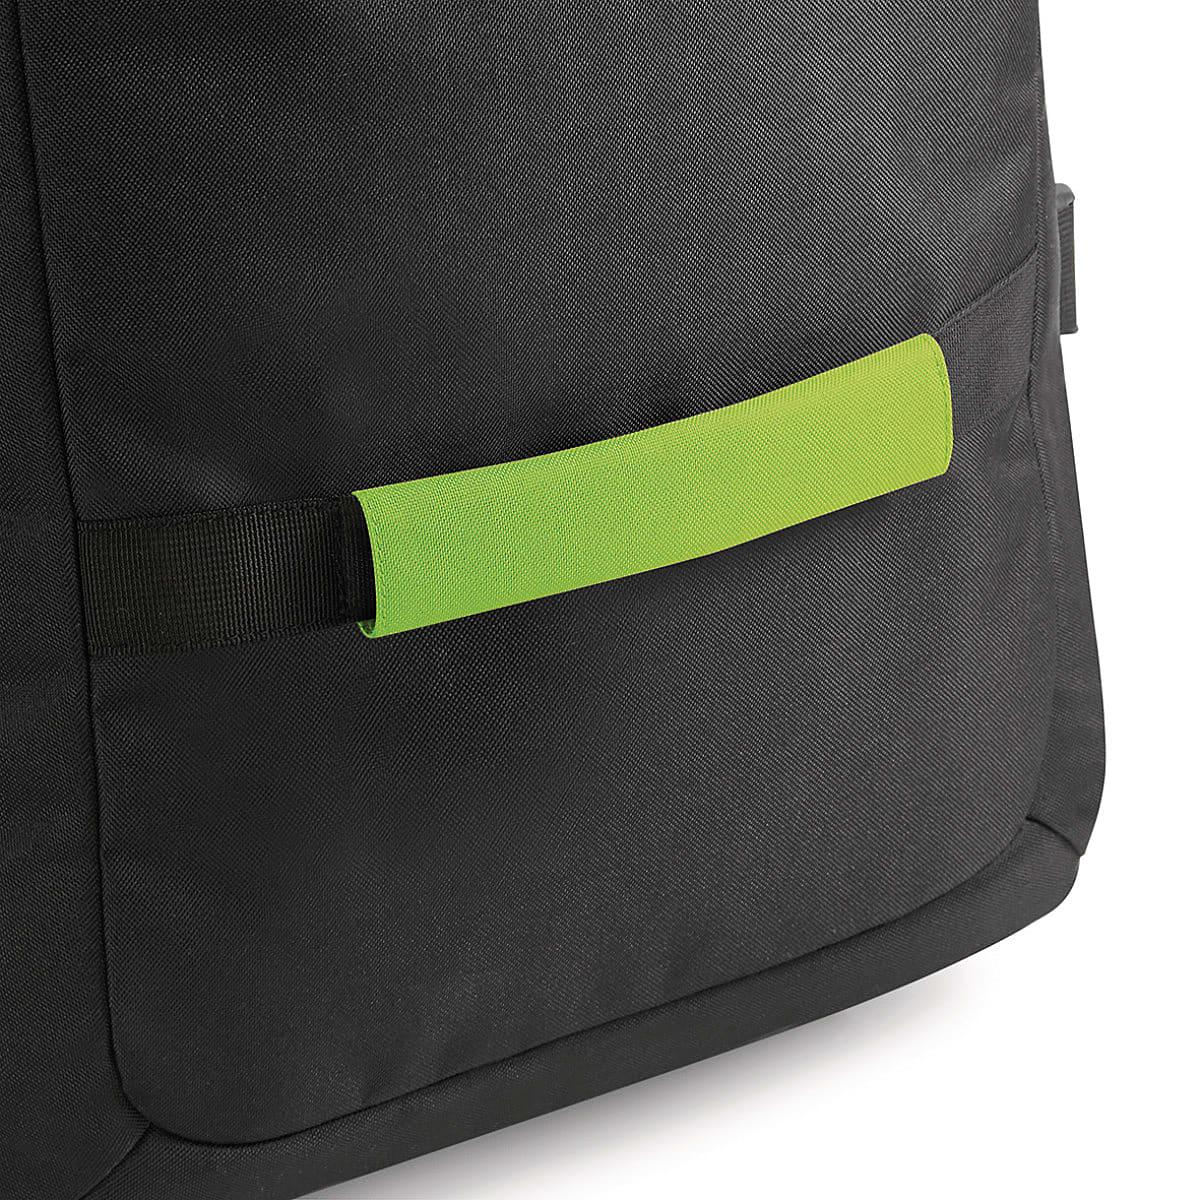 Bagbase Escape Handle Wrap in Lime (Product Code: BG485)